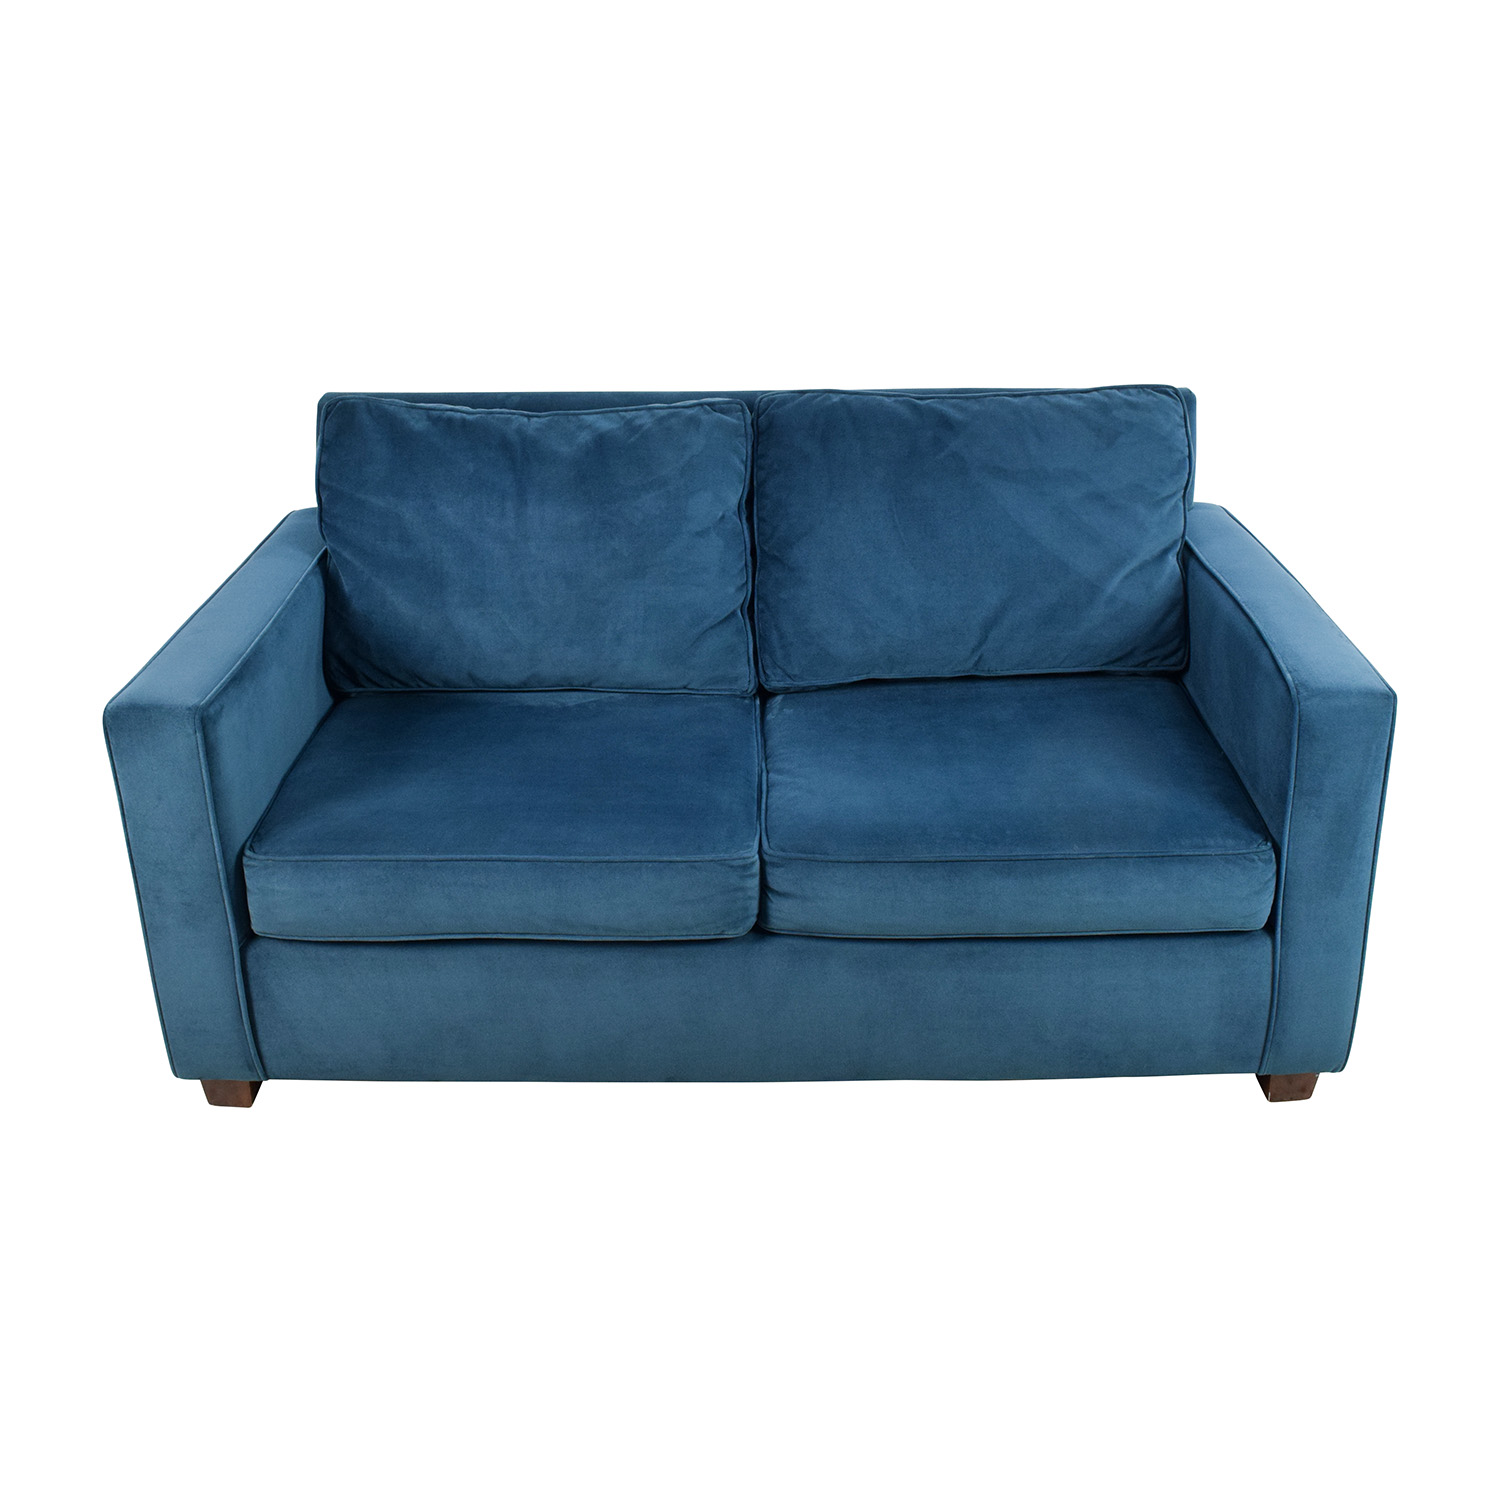 Fine 39 Off West Elm West Elm Celestial Blue Henry Loveseat Sofas Caraccident5 Cool Chair Designs And Ideas Caraccident5Info